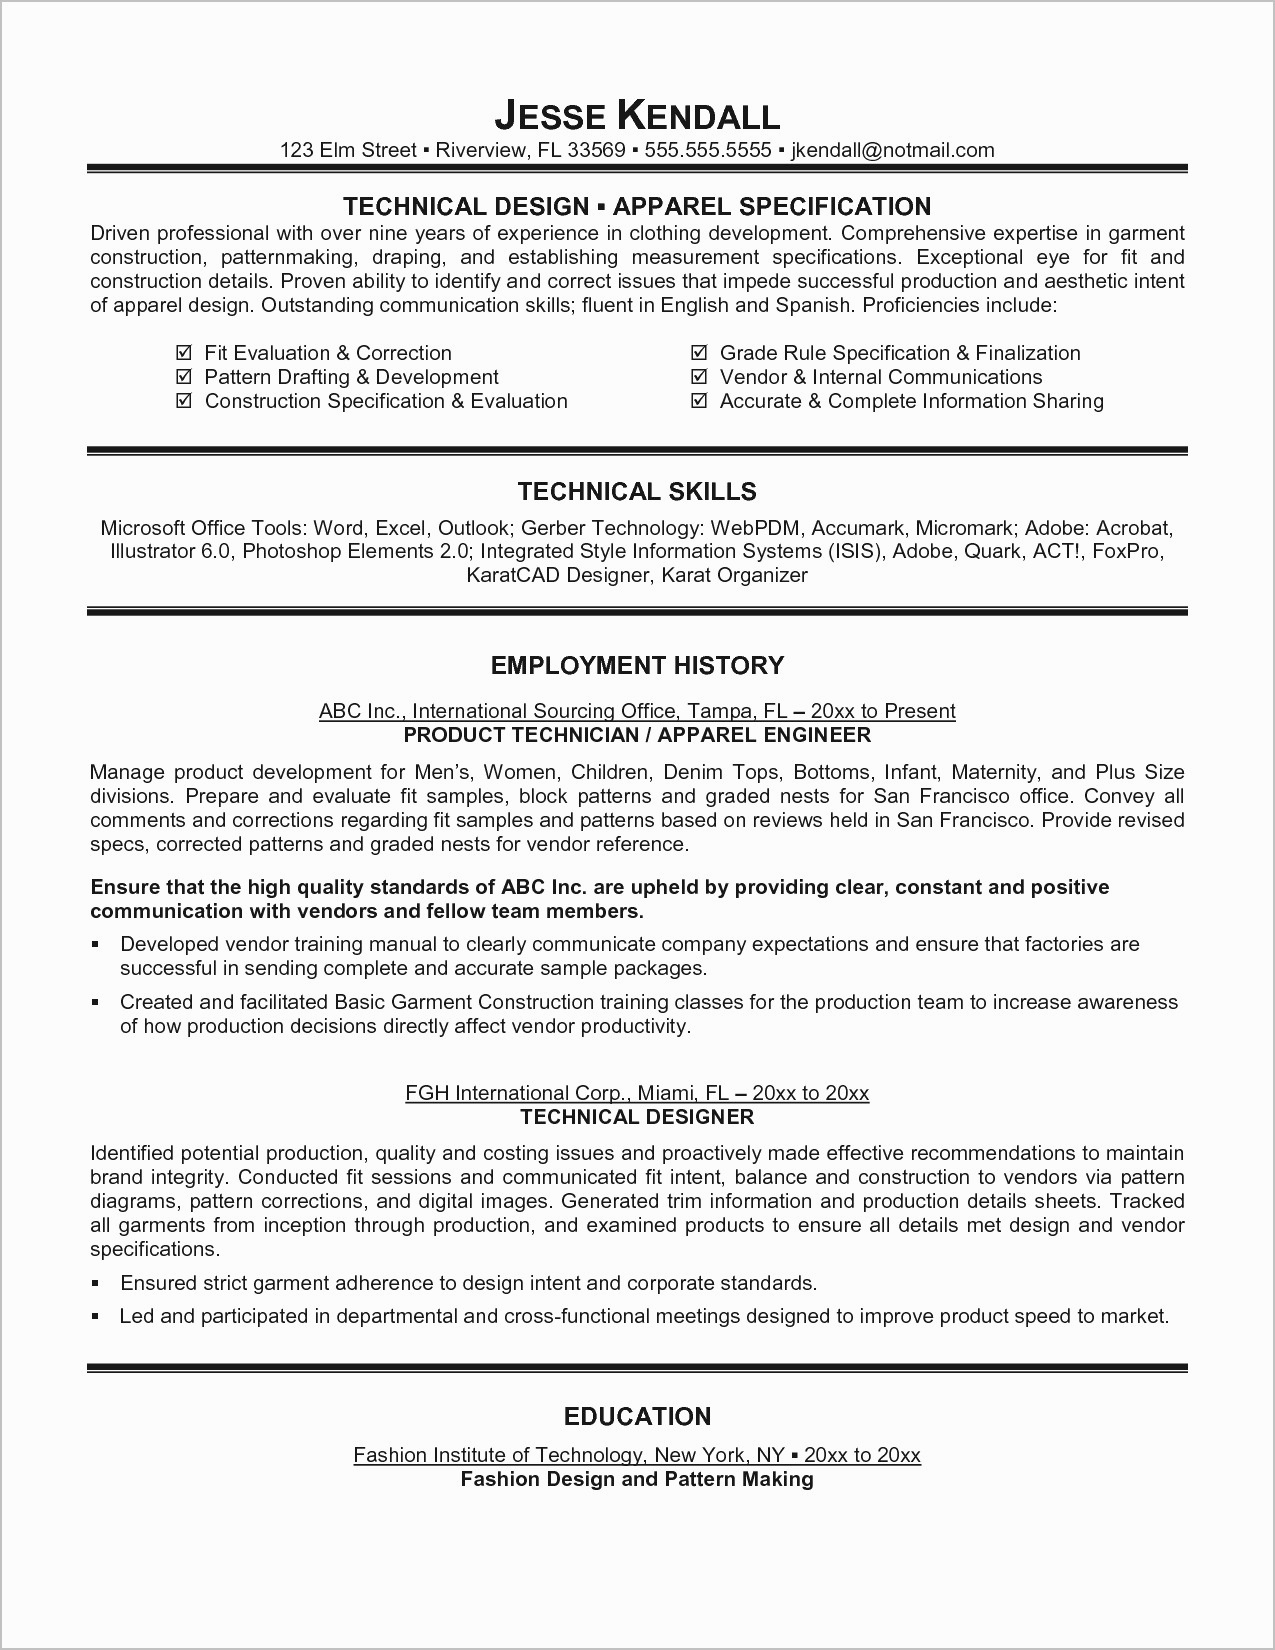 Gatech Resume Template - Quality Engineer Walsall